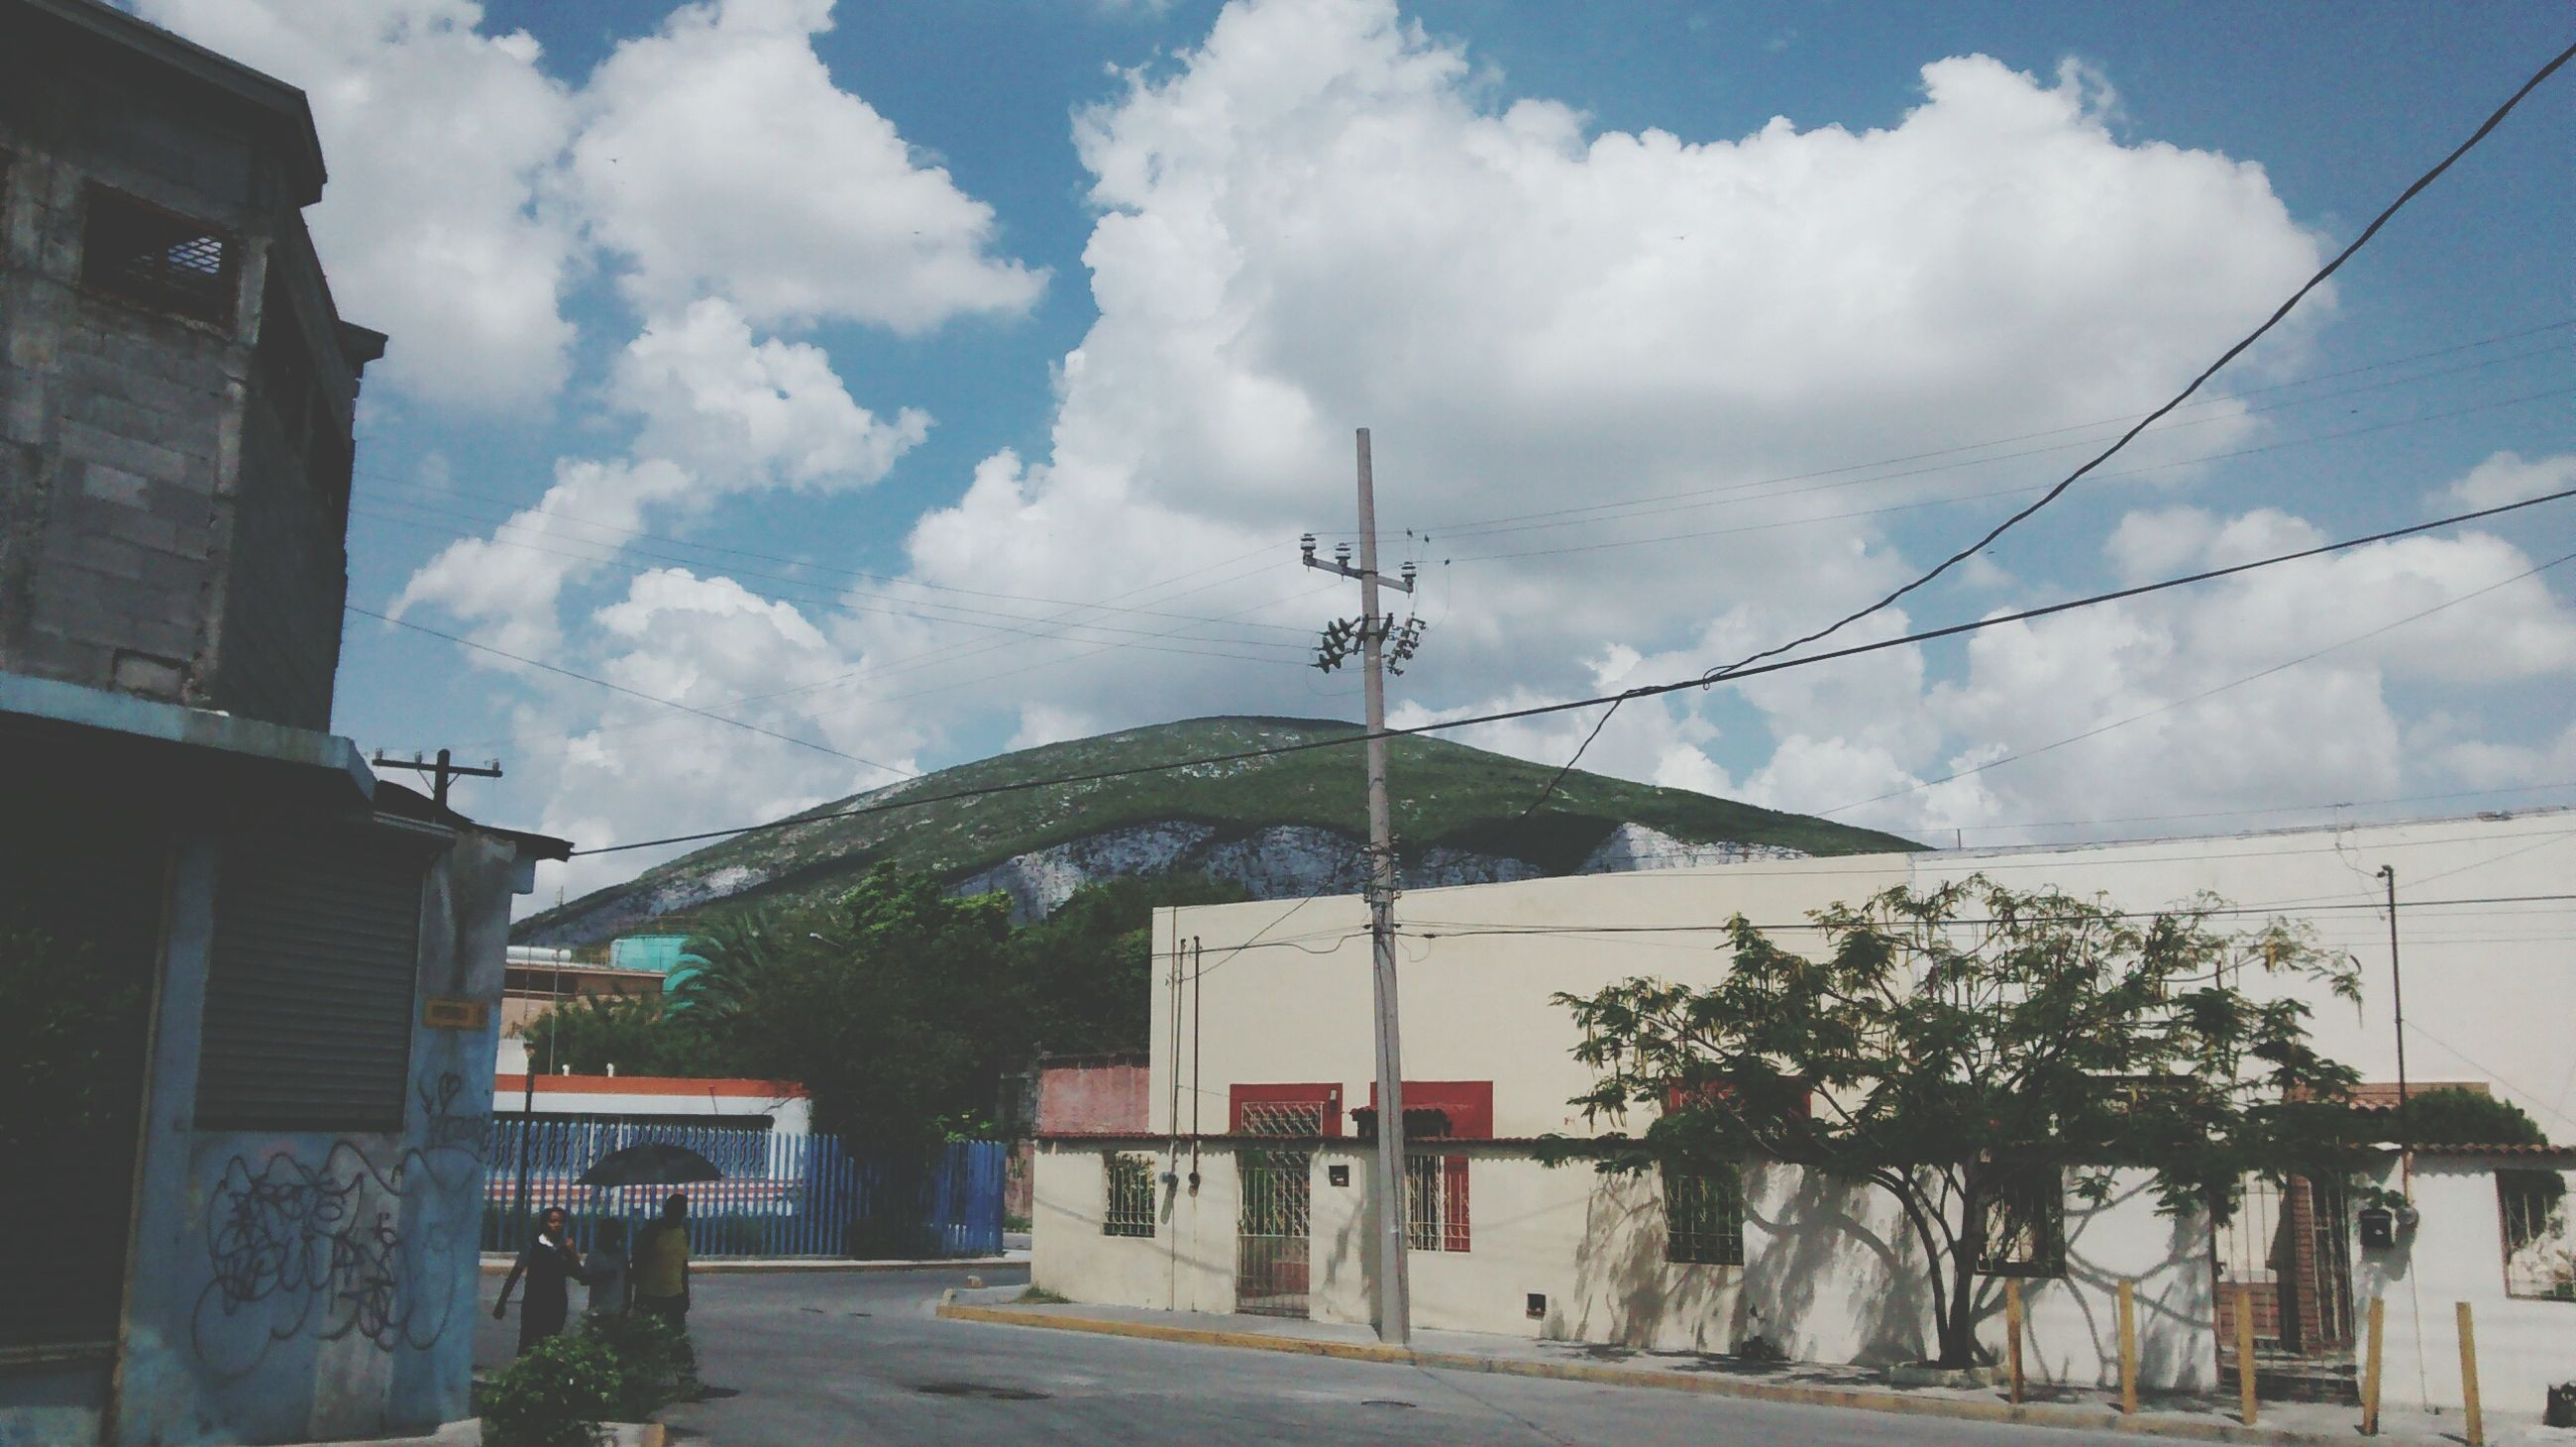 building exterior, architecture, built structure, sky, house, cloud - sky, power line, residential structure, cloud, residential building, town, mountain, tree, electricity pylon, cable, road, street, day, cloudy, outdoors